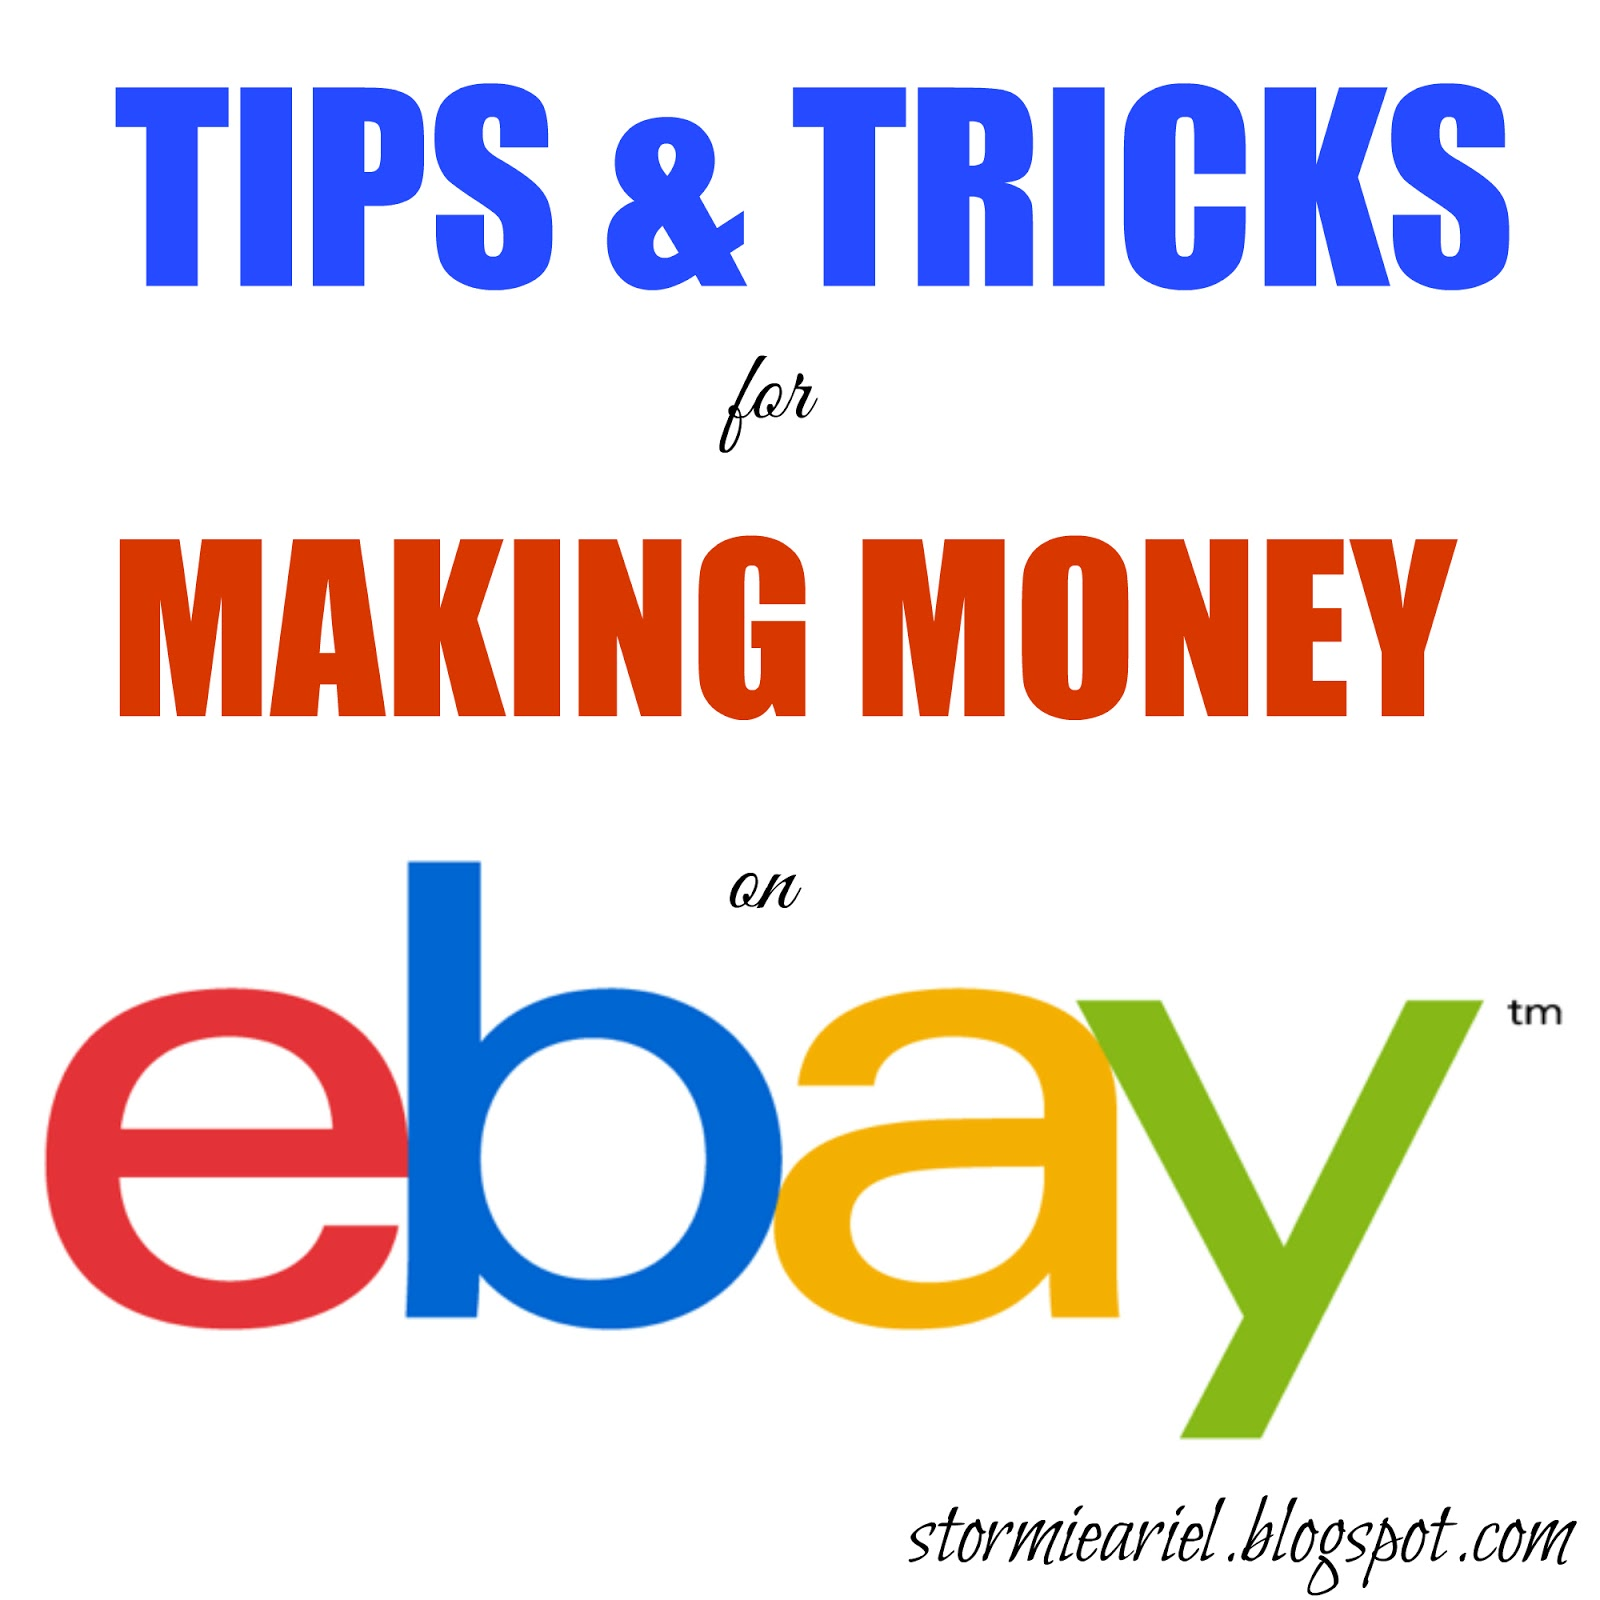 Tips & Tricks for Making Money on eBay